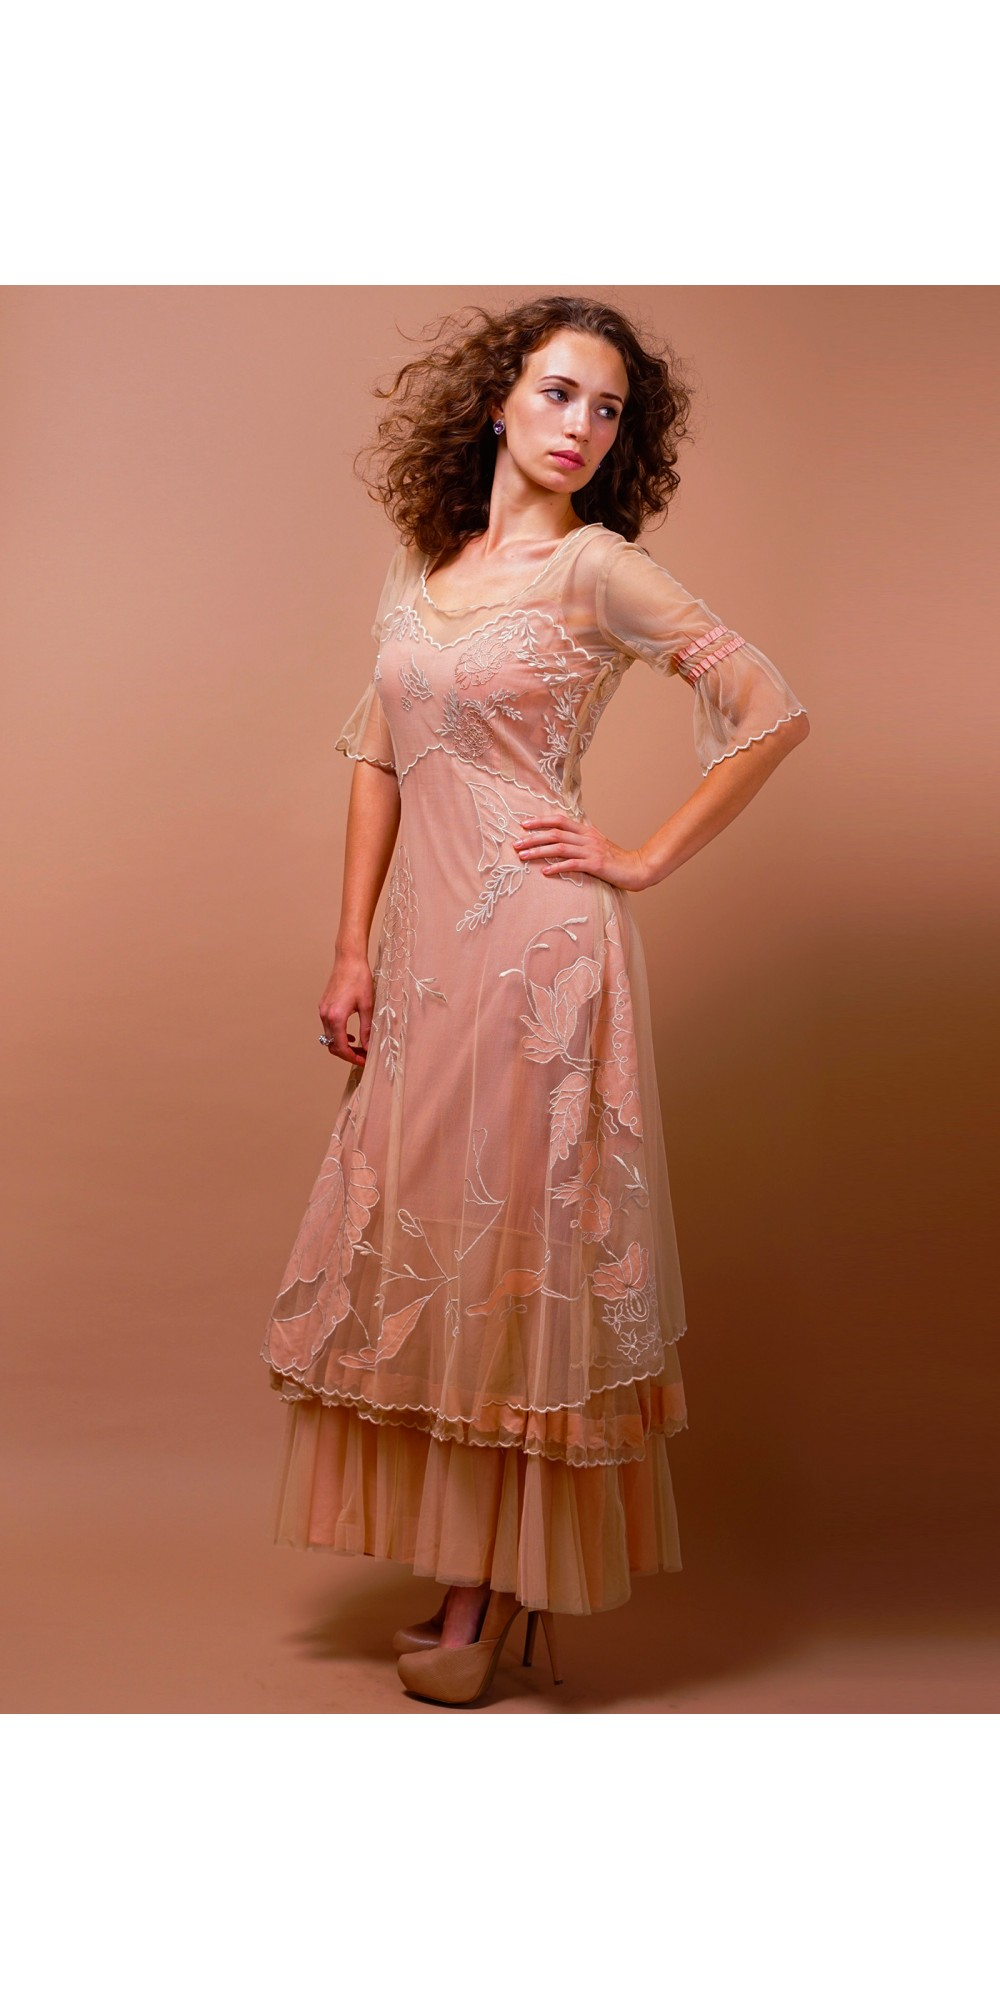 Awesome Titanic Gown Frieze - Wedding and flowers ispiration - sessa.us